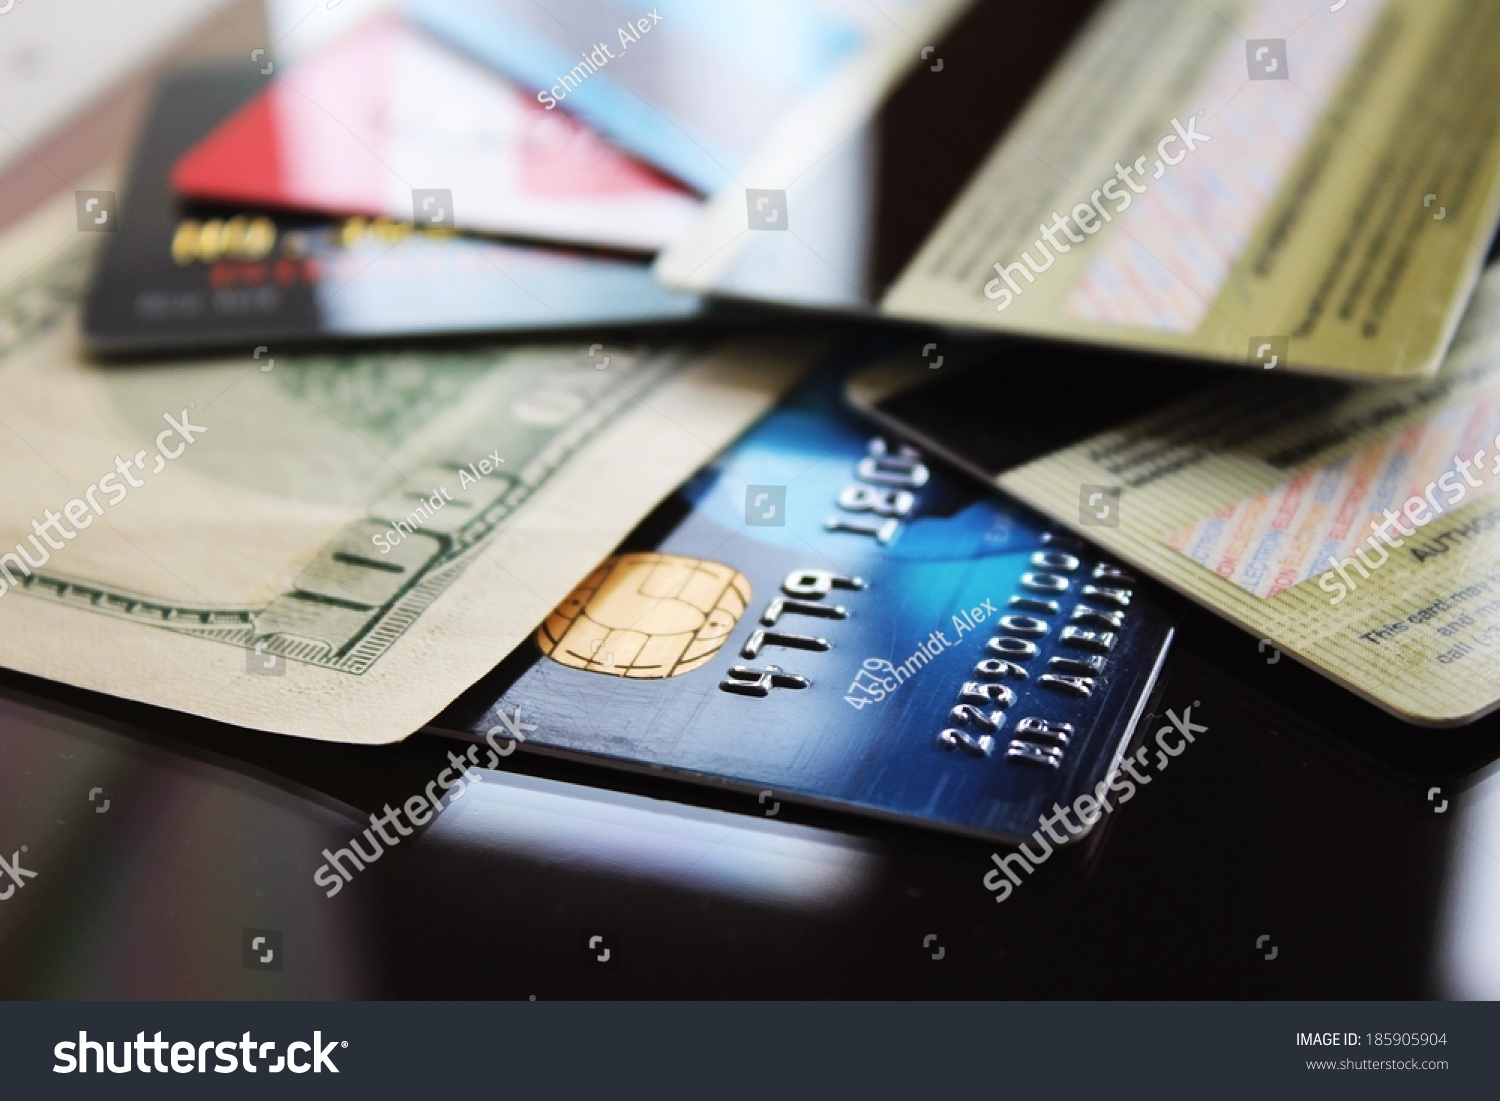 Business credit card natwest gallery free business cards best business credit card images free business cards business credit card natwest image collections free business magicingreecefo Image collections